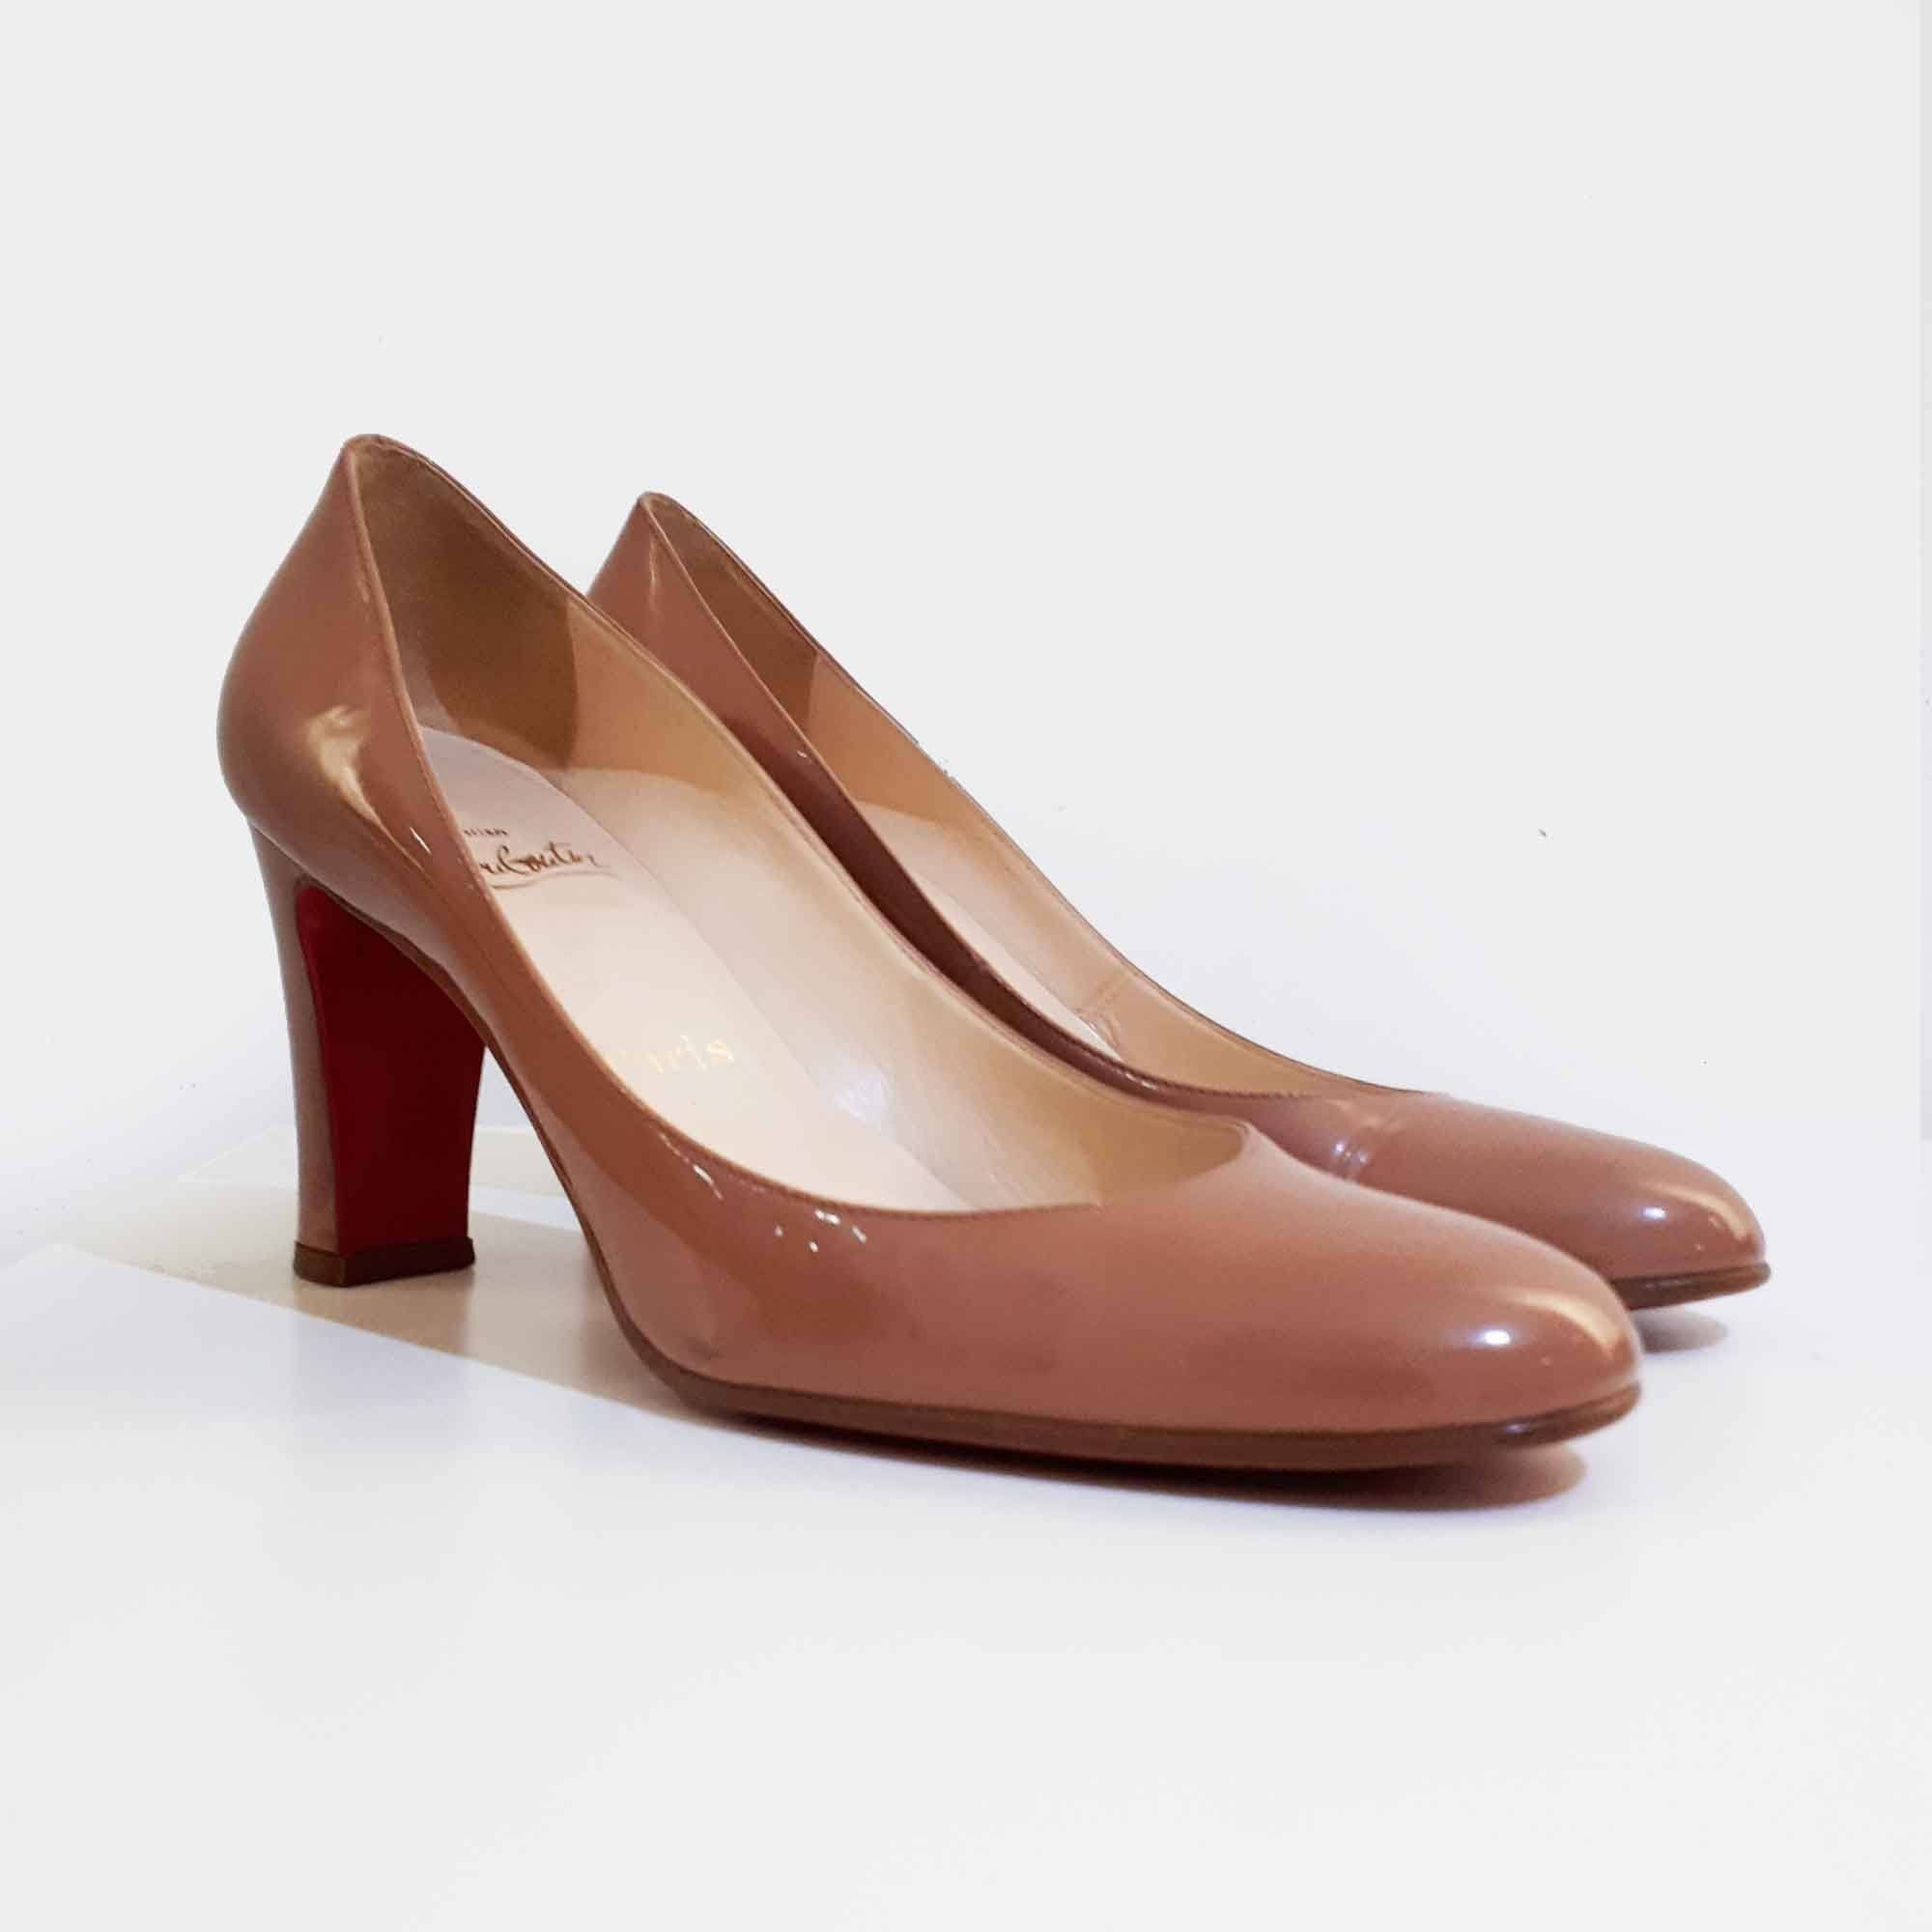 Christian Louboutin Cadrilla 100 Patent Leather